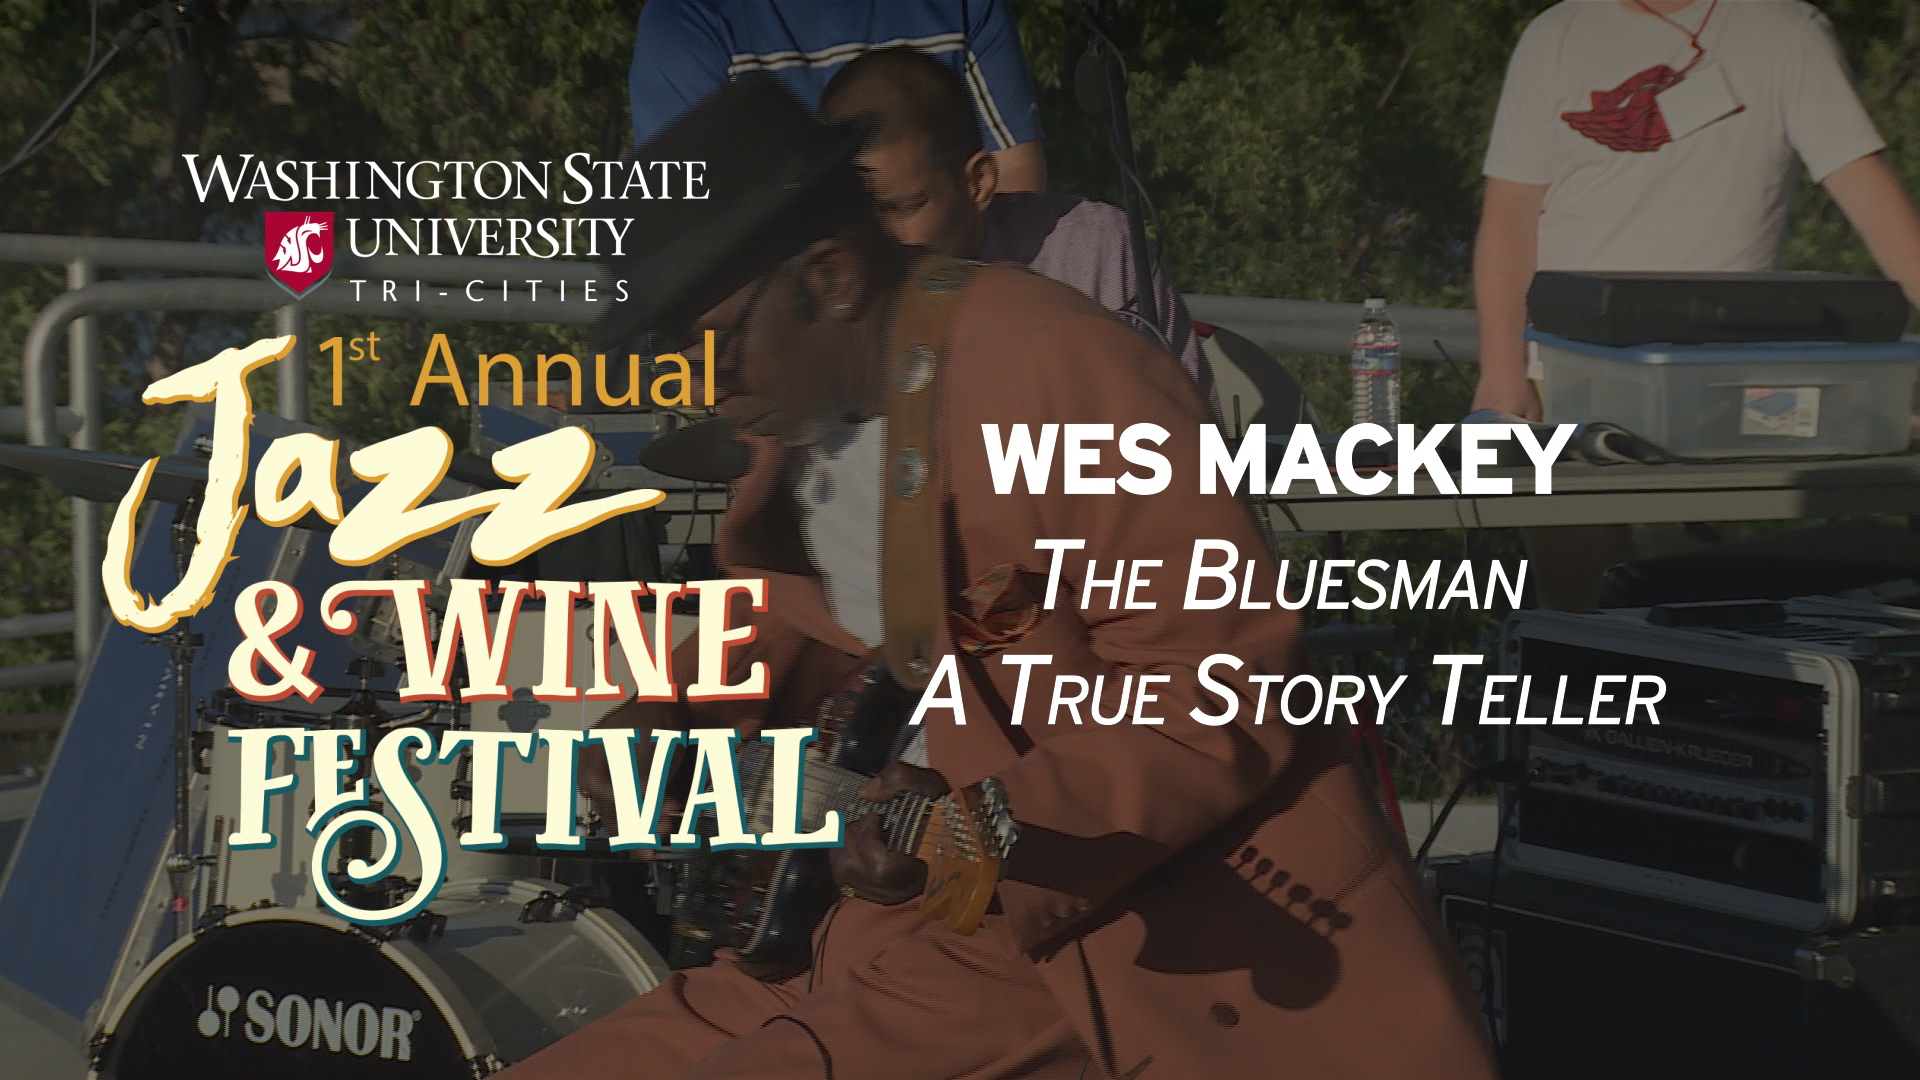 WSU Tri-Cities 1st Annual Wine & Jazz Festival